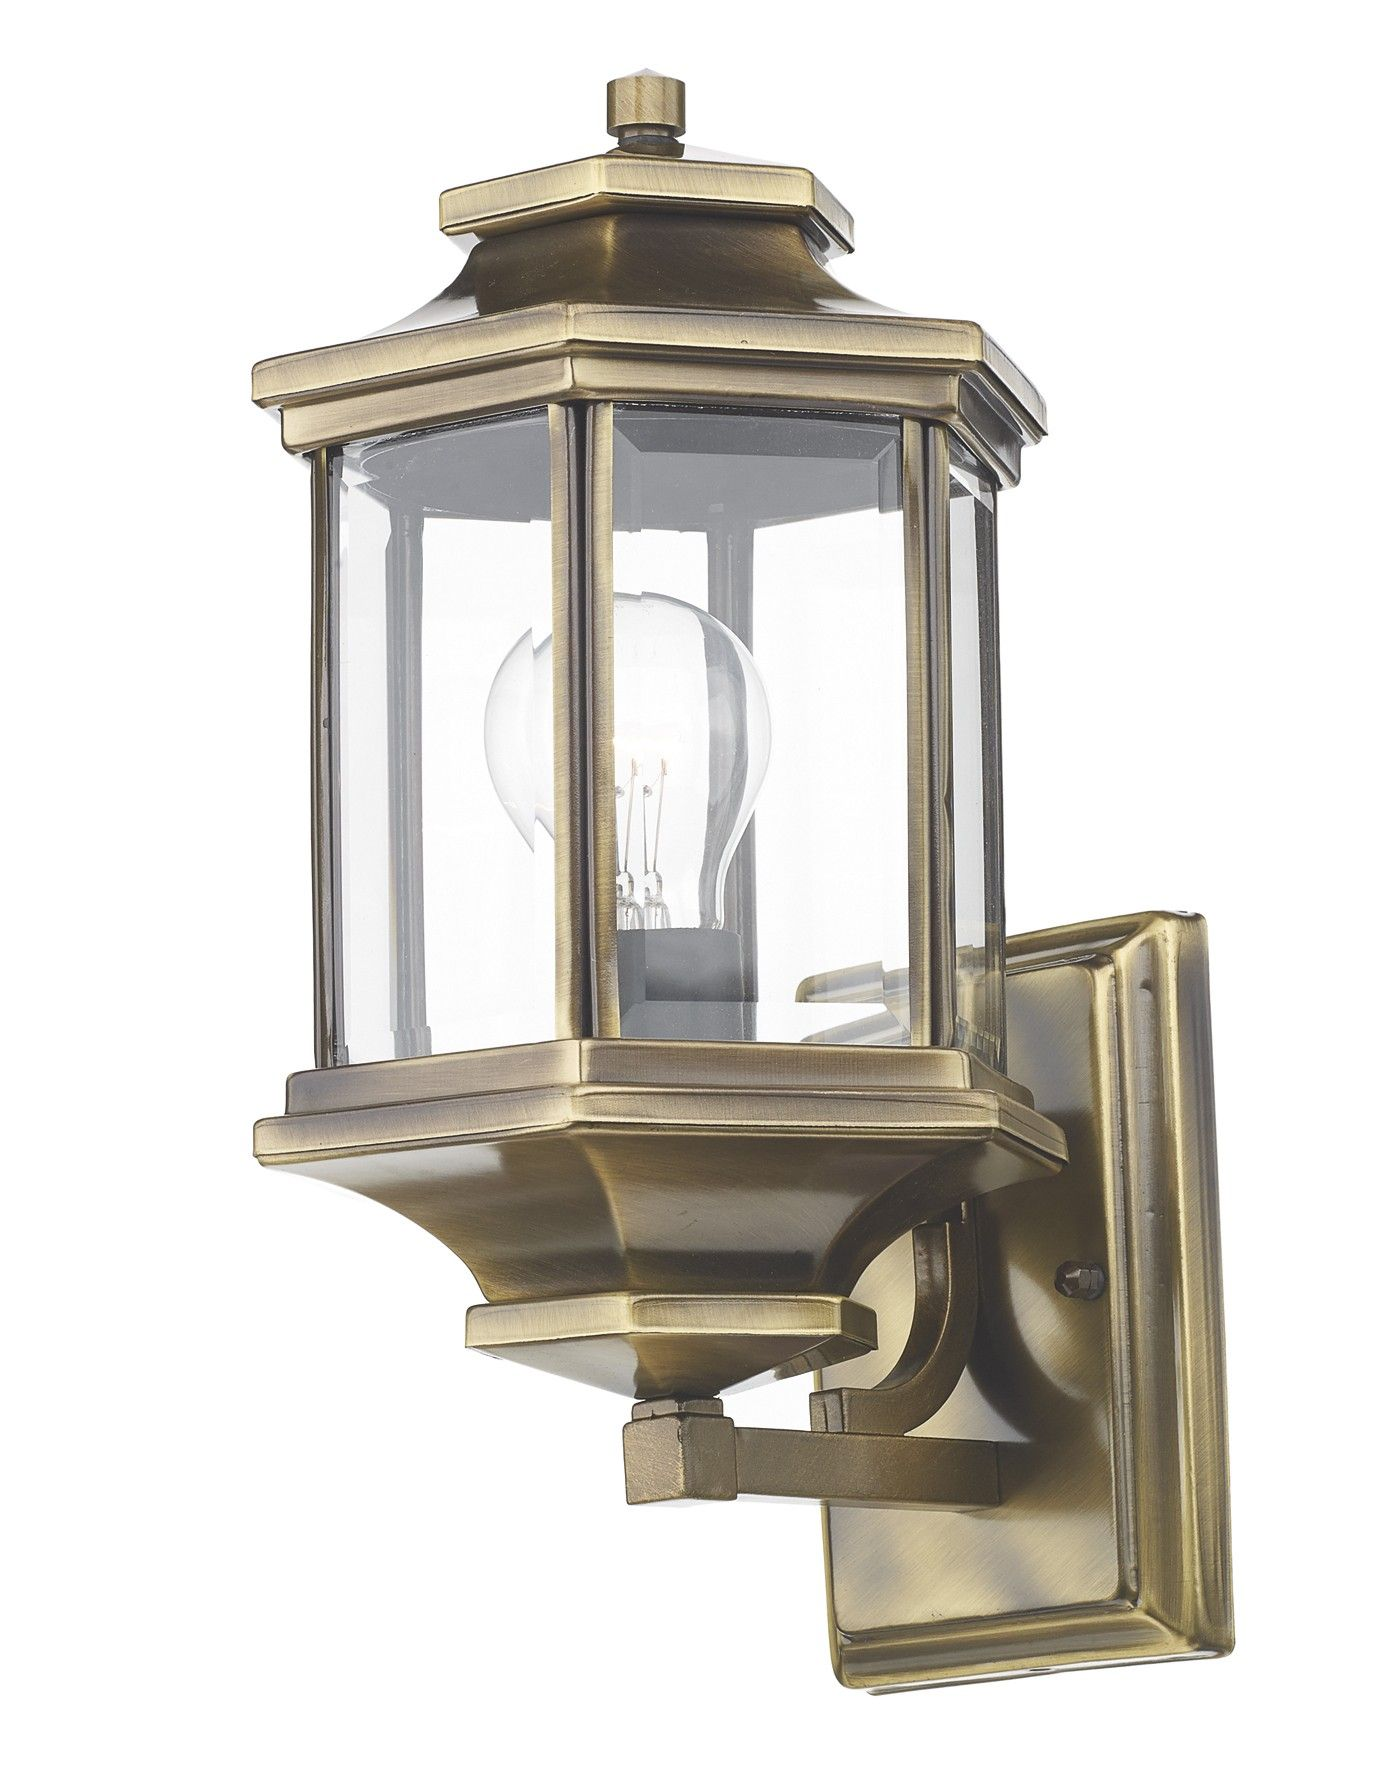 Ladbroke Lantern Antique Brass Complete With Bevelled Glass Wall Lights Outdoor Wall Lighting Wall Lantern